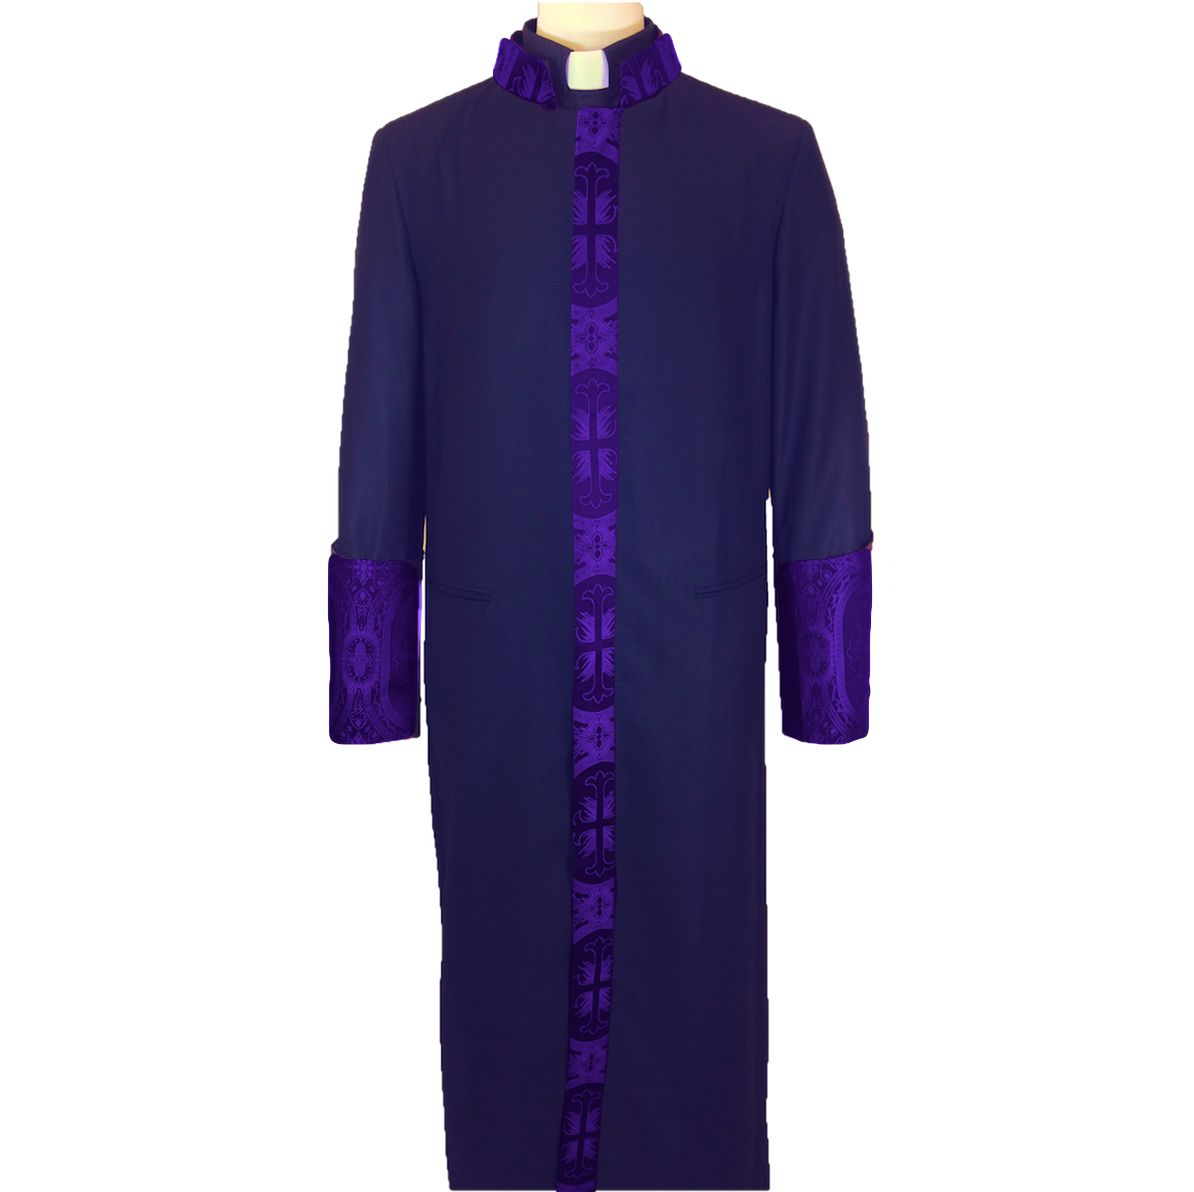 854 M. Men's Premium Pastor/Clergy Robe Black/Purple